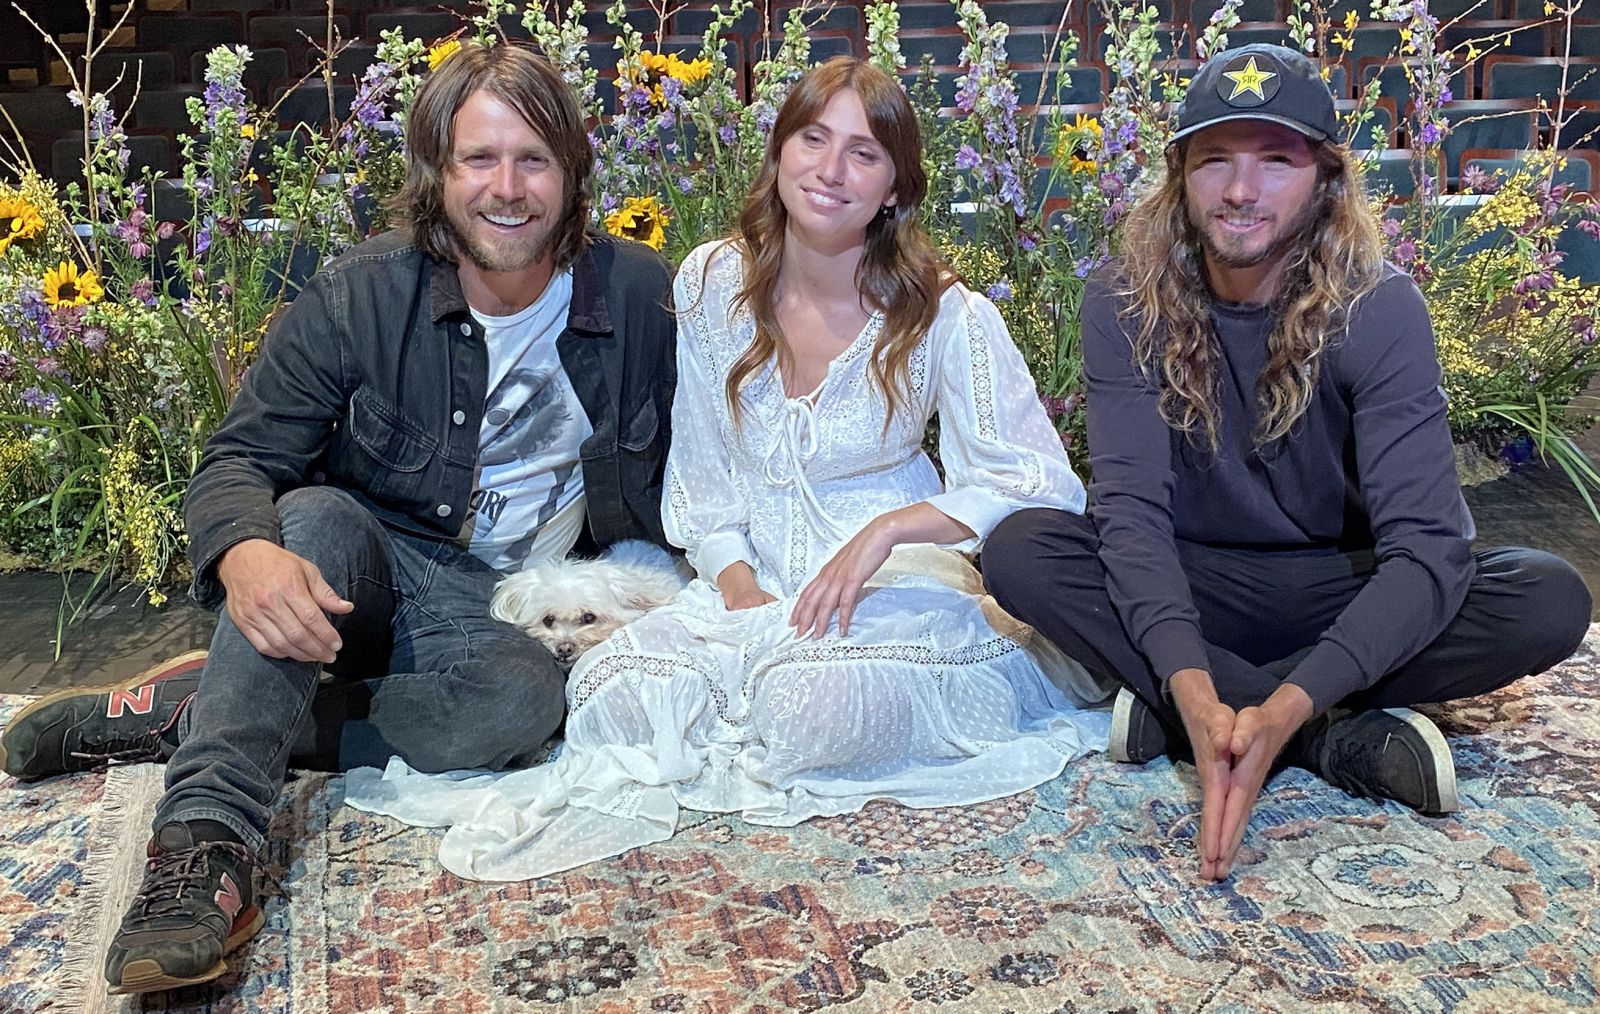 Lily Meola & Lukas Nelson Perform March 20 in Live @ the MACC's Free Virtual Concert Series